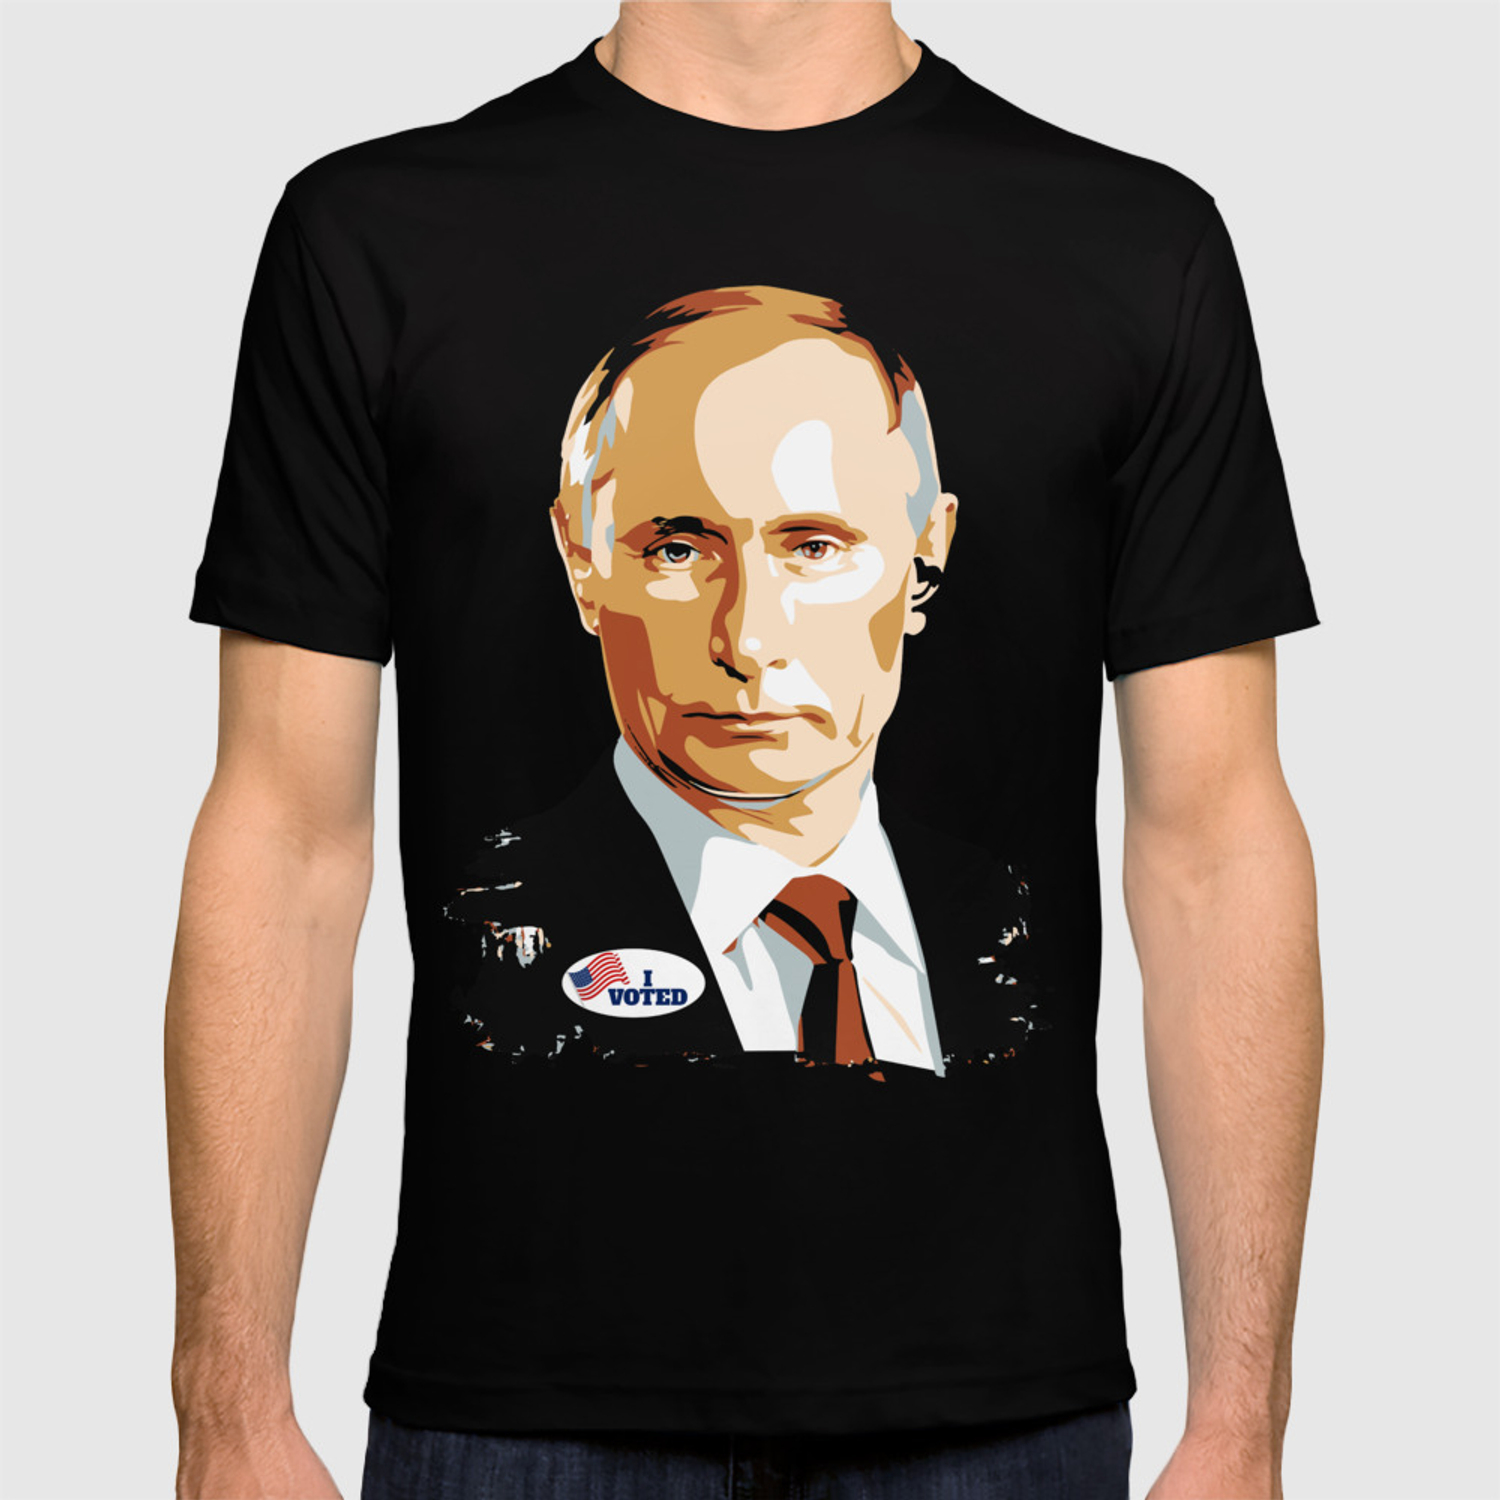 I Voted Vladimir Putin With Usa I Voted Sticker Graphic T Shirt By Zippythread Society6